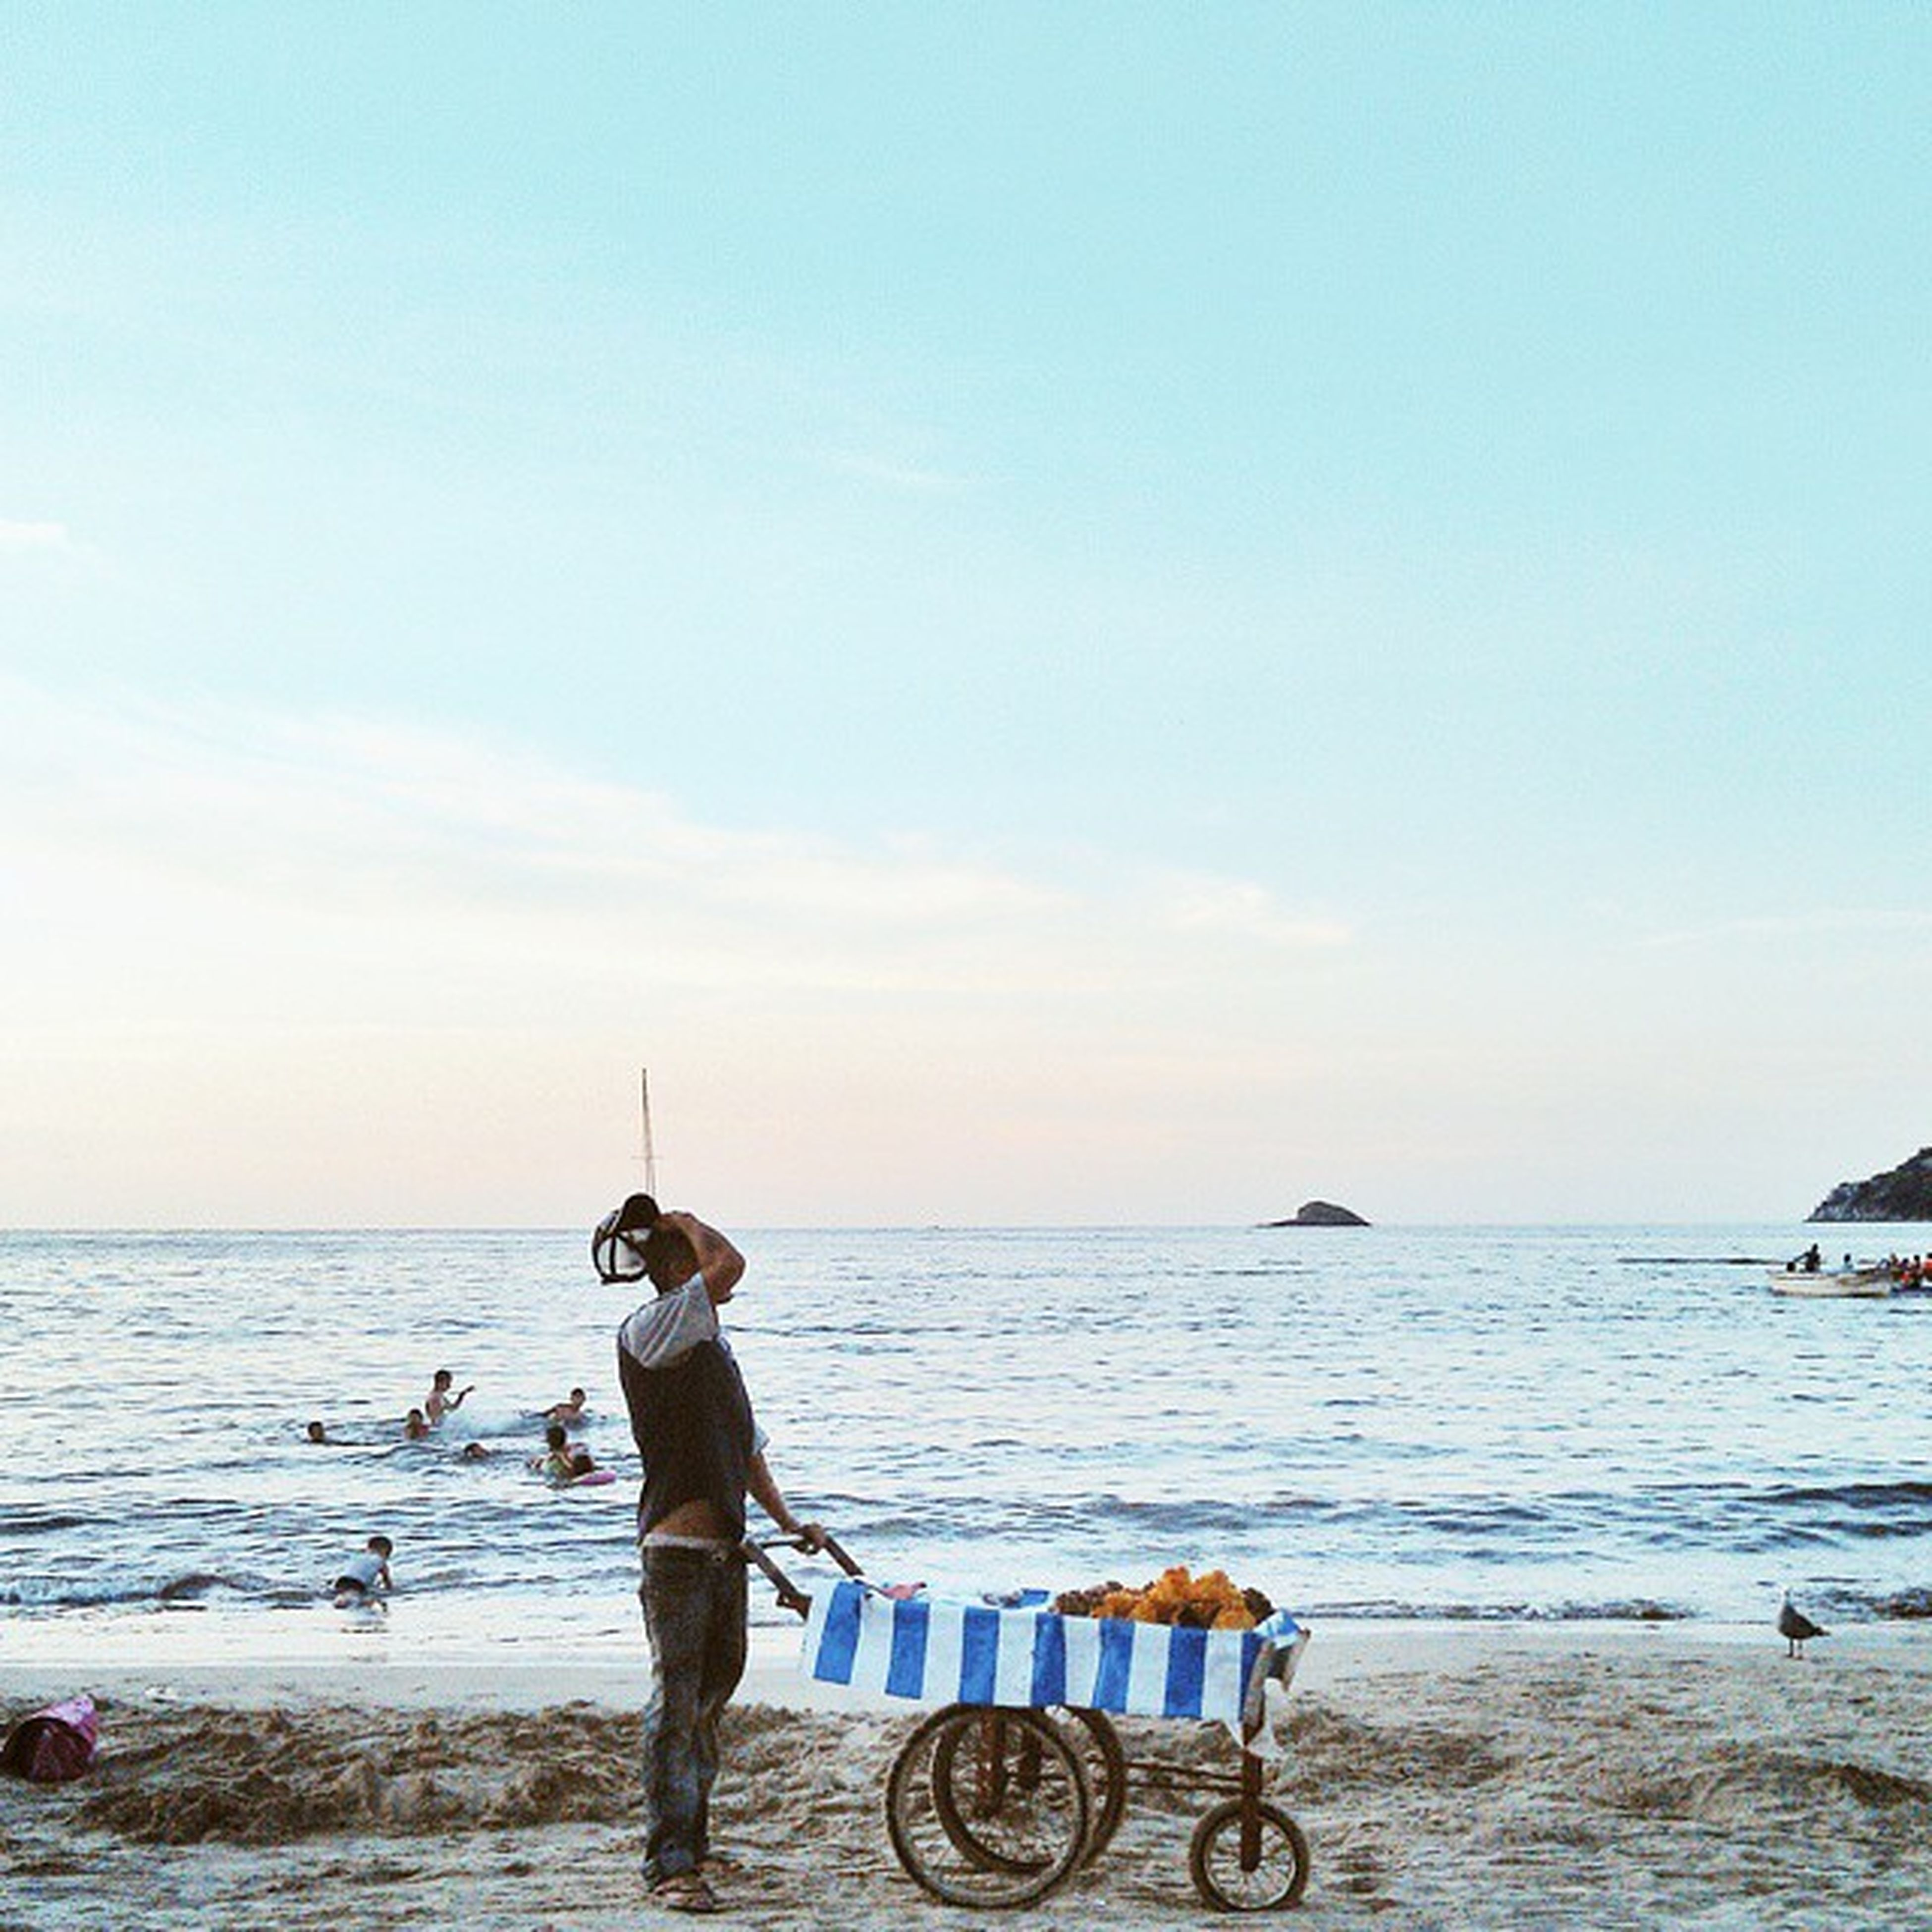 sea, horizon over water, water, beach, lifestyles, leisure activity, shore, sky, full length, men, transportation, nature, vacations, mode of transport, beauty in nature, rear view, tranquility